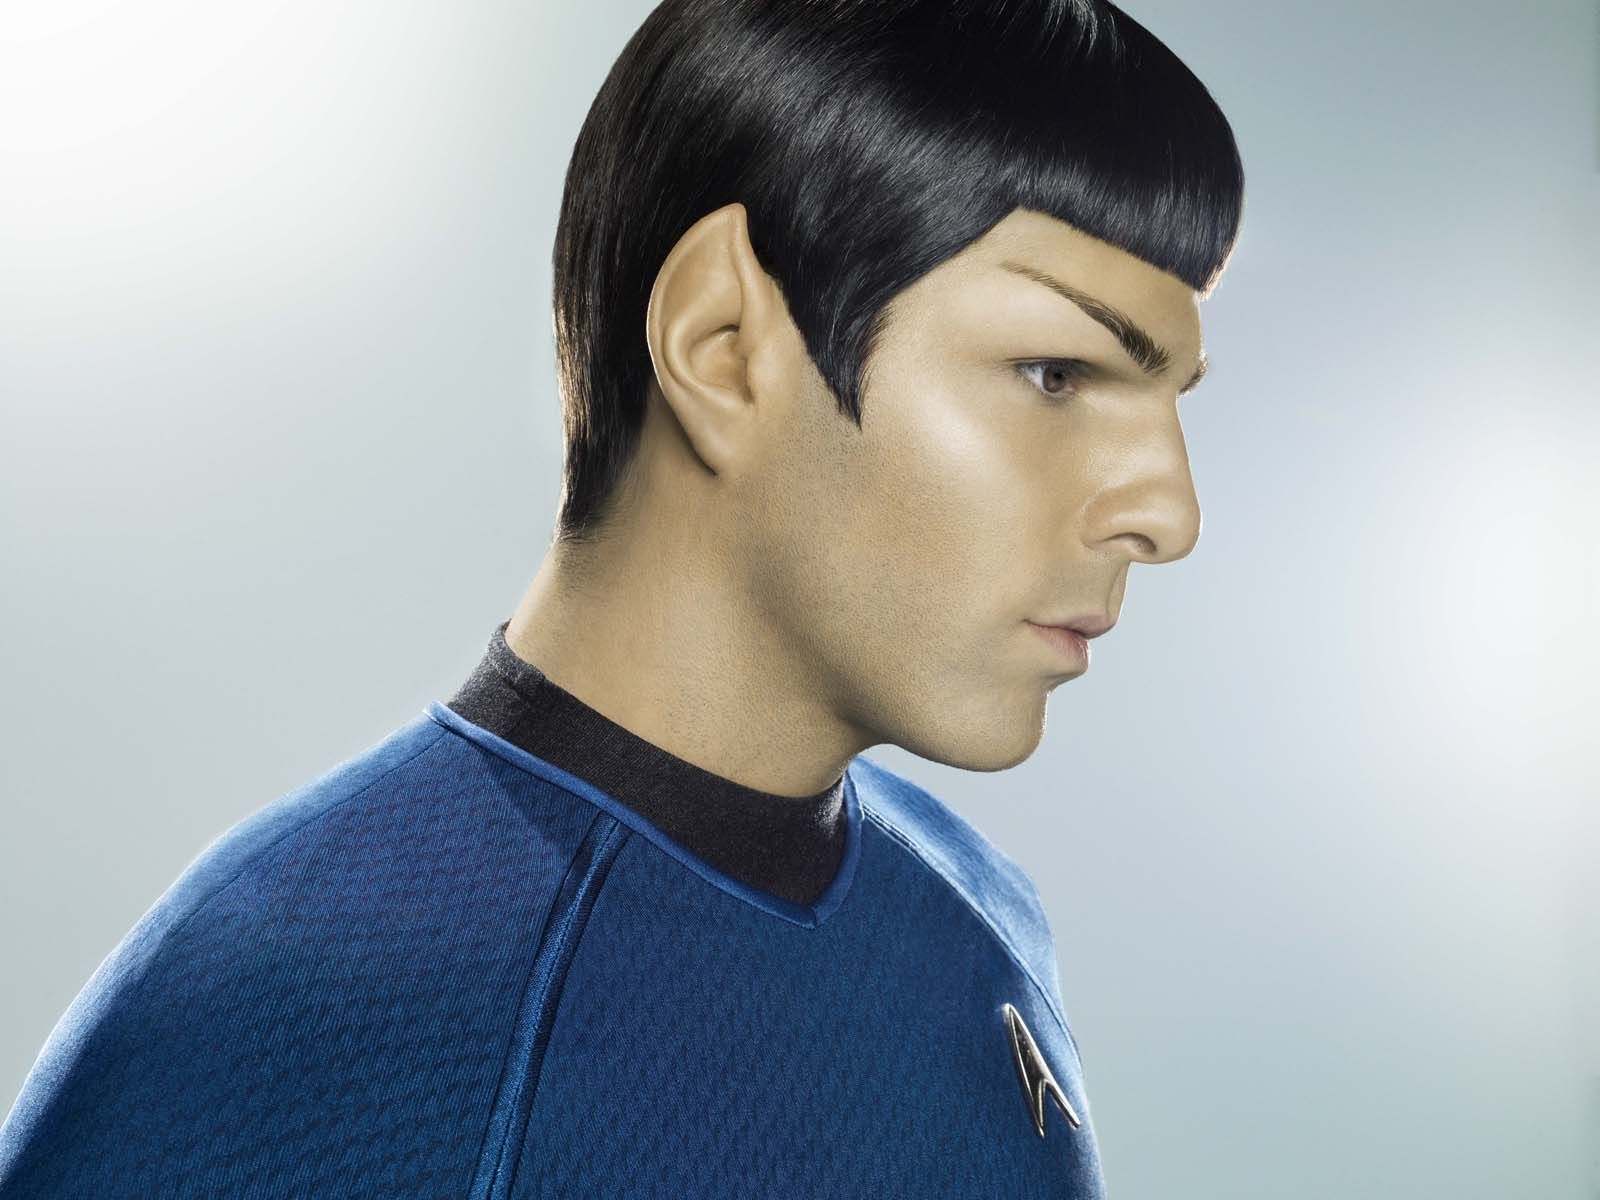 Zachary Quinto As Spock Side Portrait Wallpaper 1600x1200